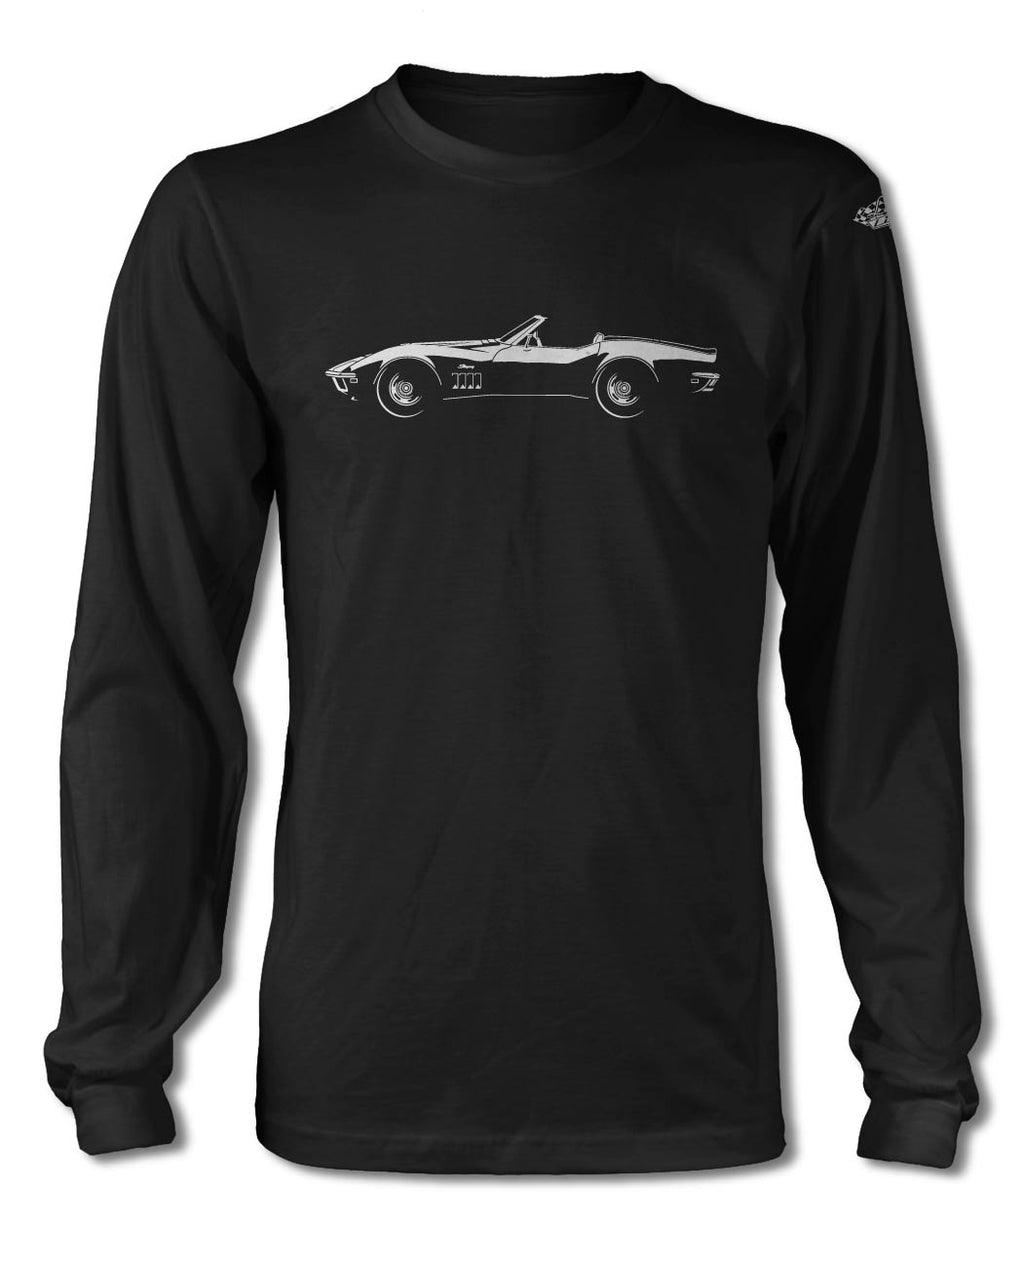 1969 Chevrolet Corvette Stingray Convertible C3 T-Shirt - Long Sleeves - Side View